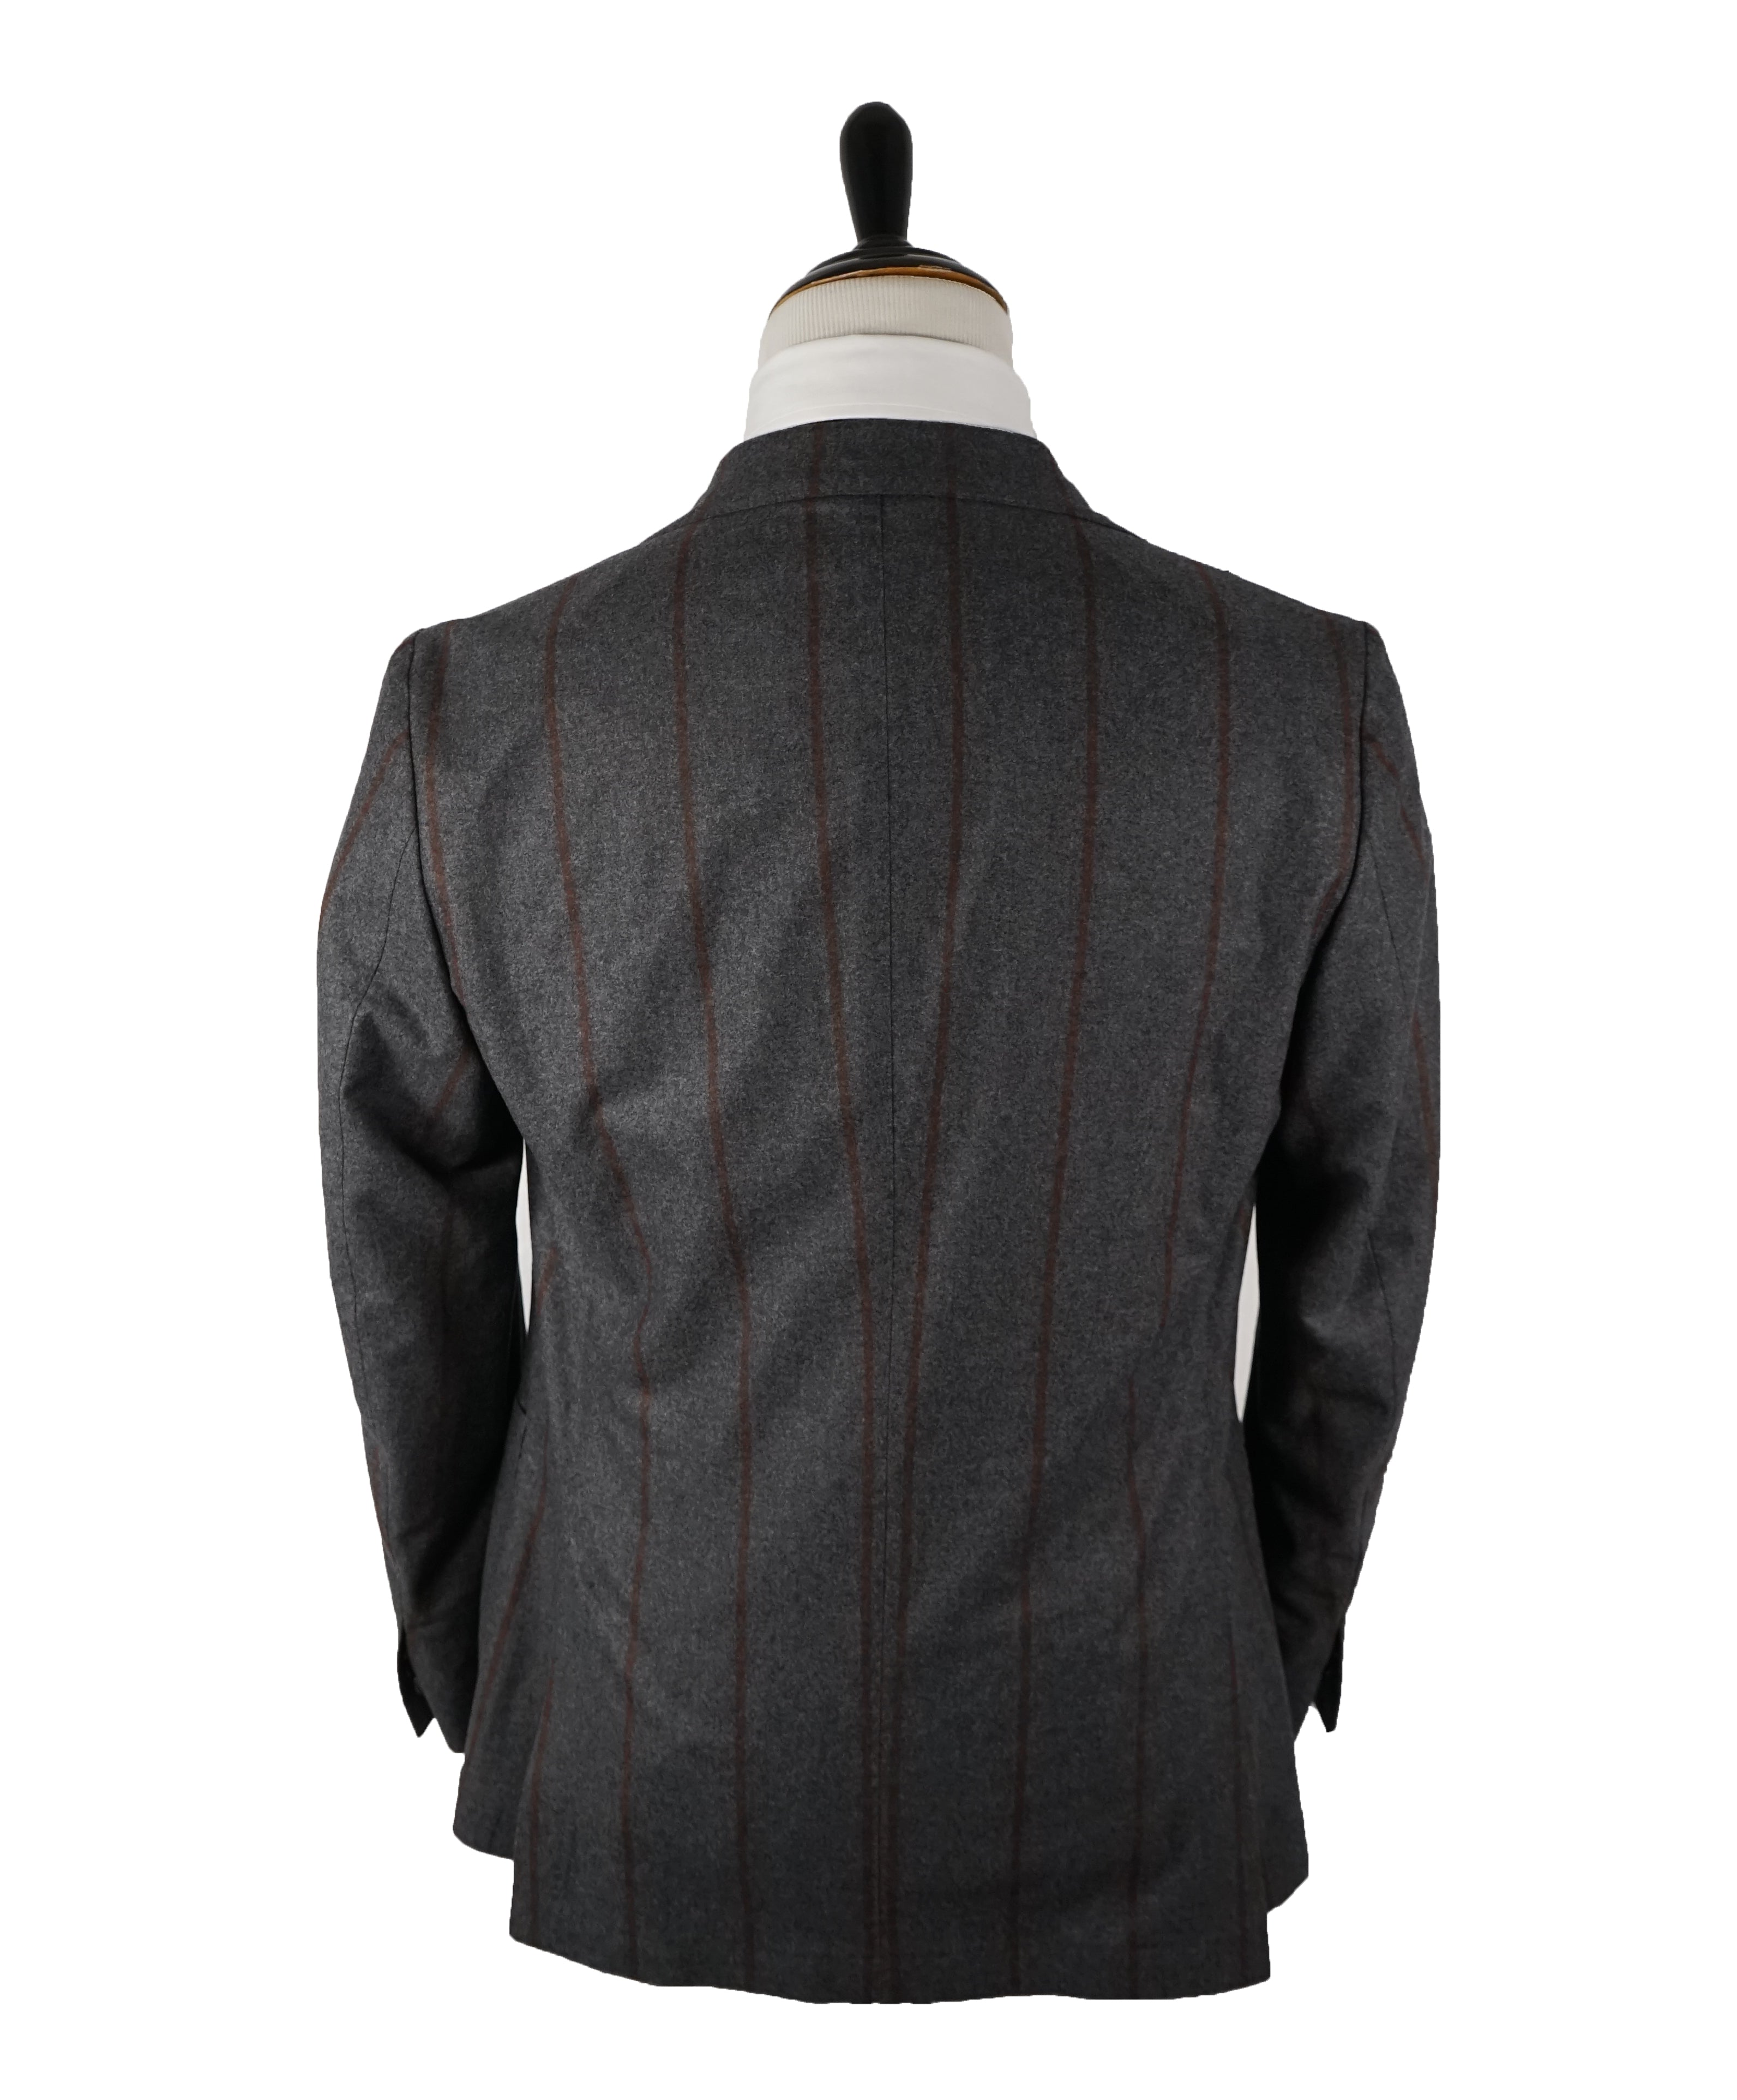 TOMBOLINI - Double Breasted Cashmere & Silk Blend Weightless Suit - 42R